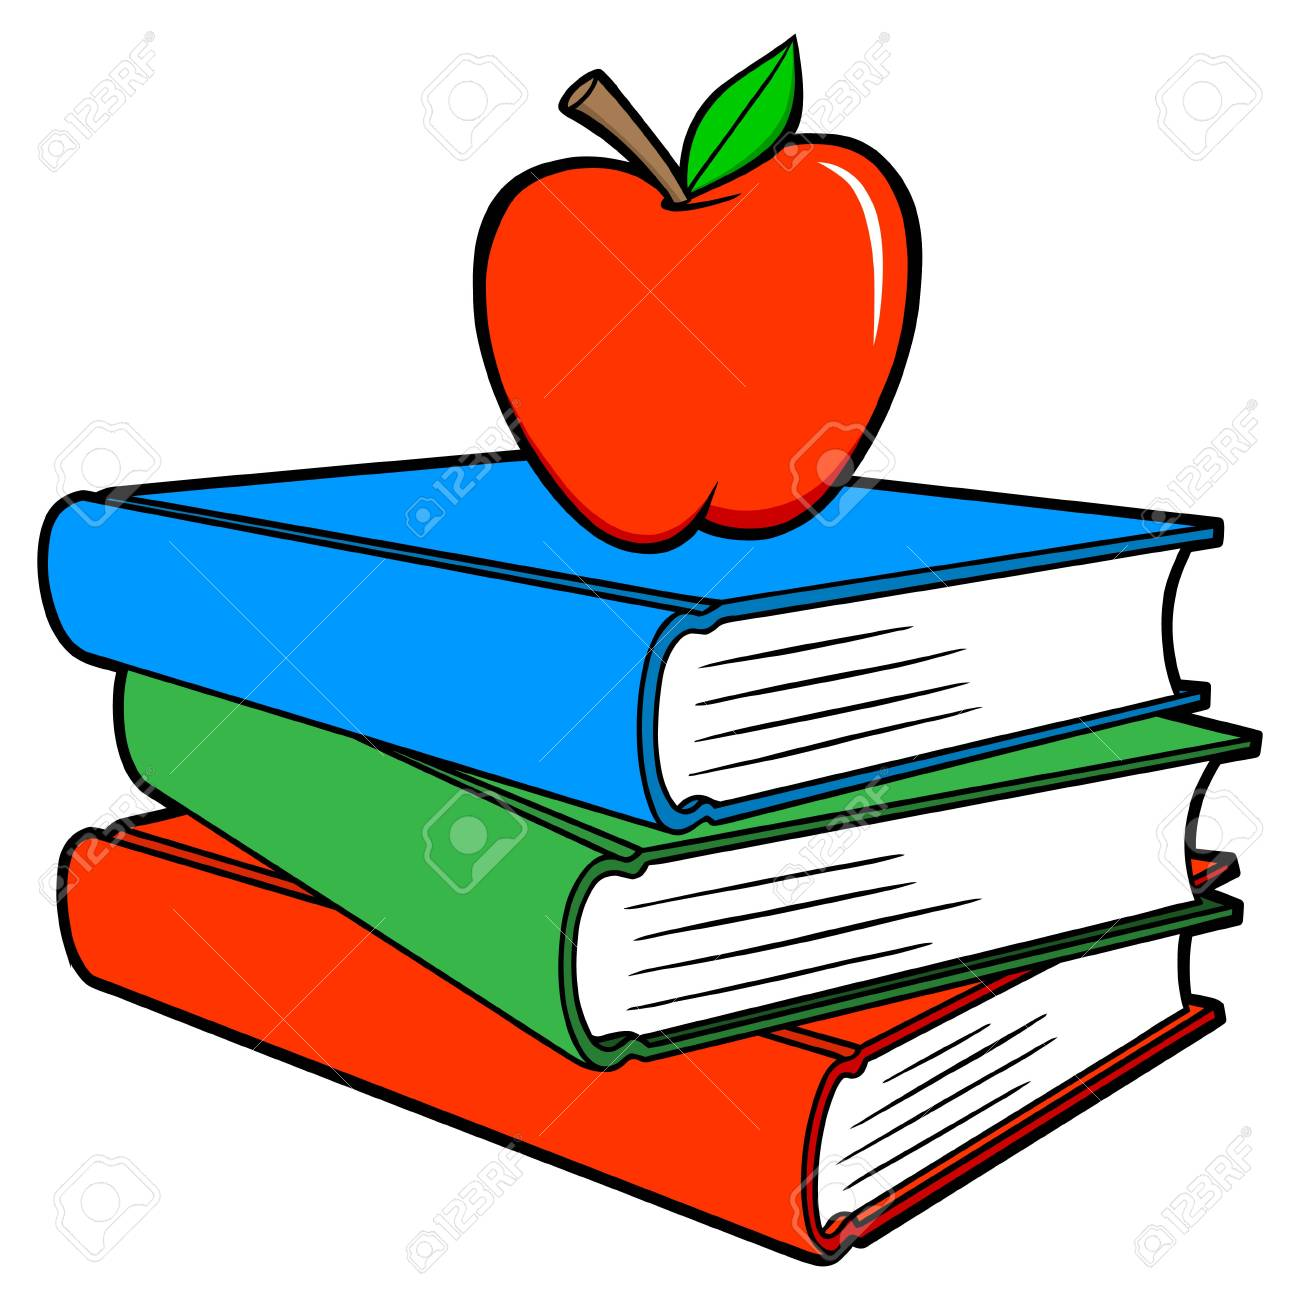 Image result for books cartoon